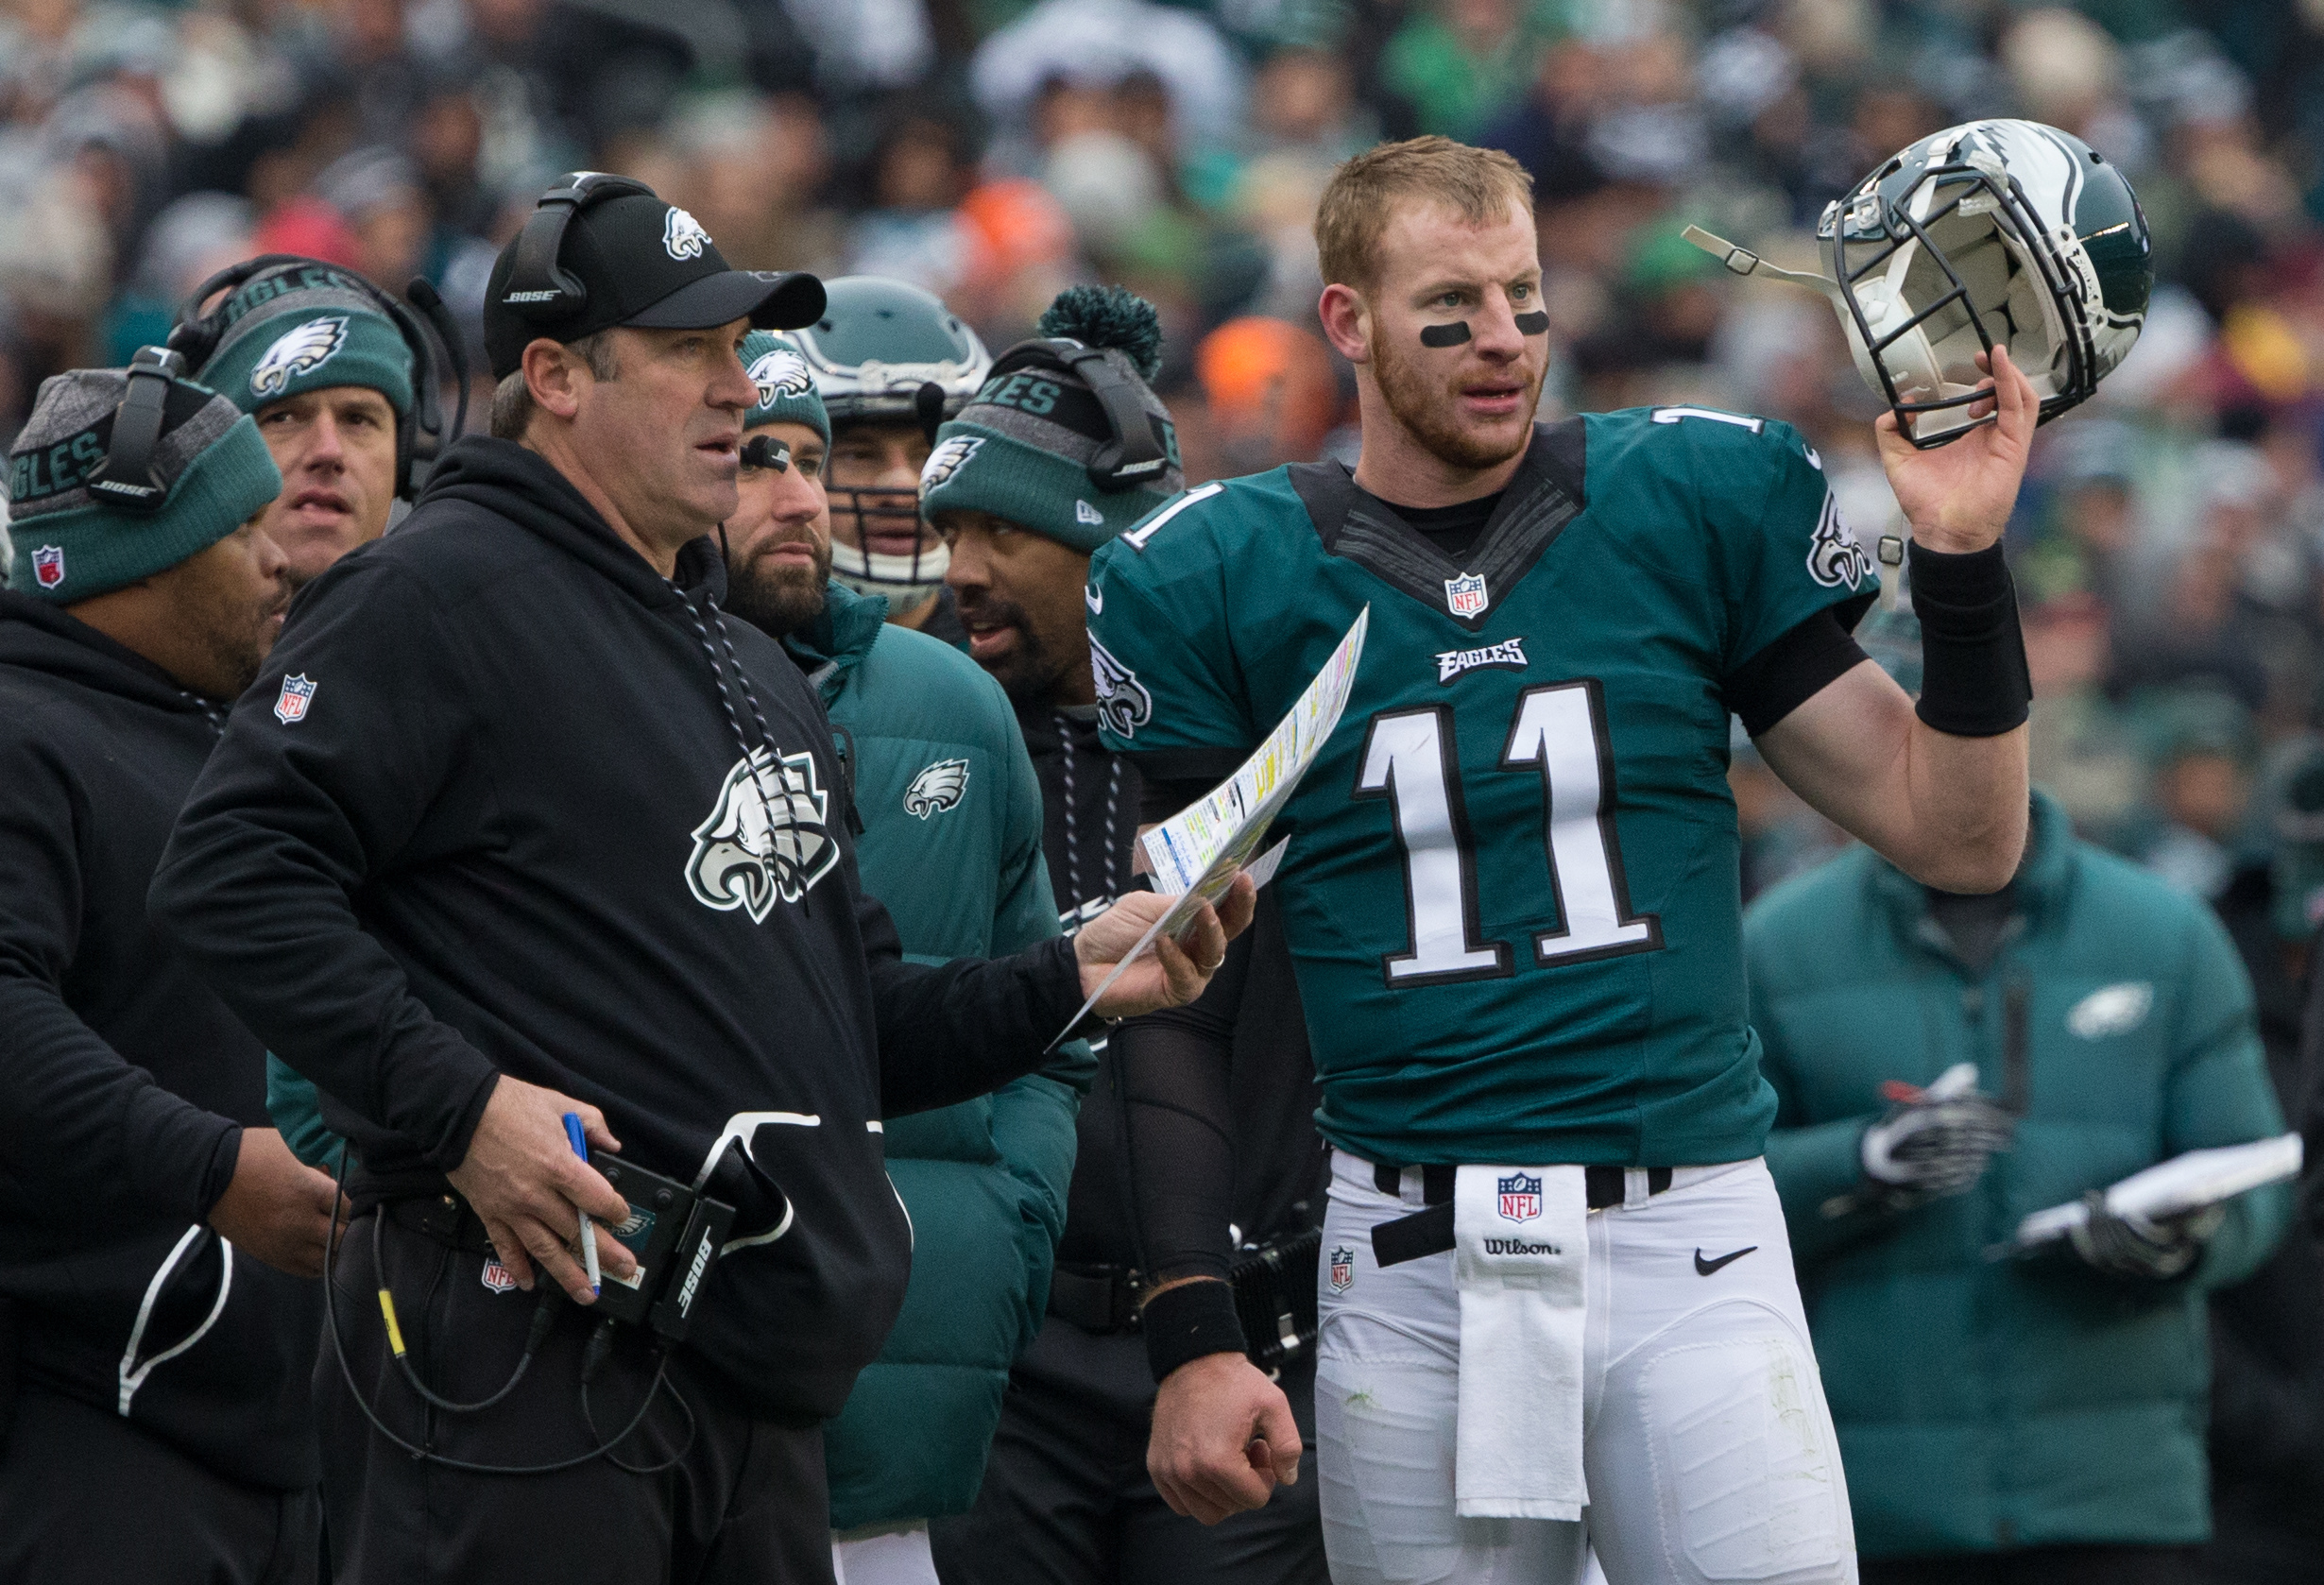 Dec 11, 2016; Philadelphia, PA, USA; Philadelphia Eagles quarterback Carson Wentz (11) talks with head coach Doug Pederson during the second quarter against the Washington Redskins at Lincoln Financial Field. Mandatory Credit: Bill Streicher-USA TODAY Sports